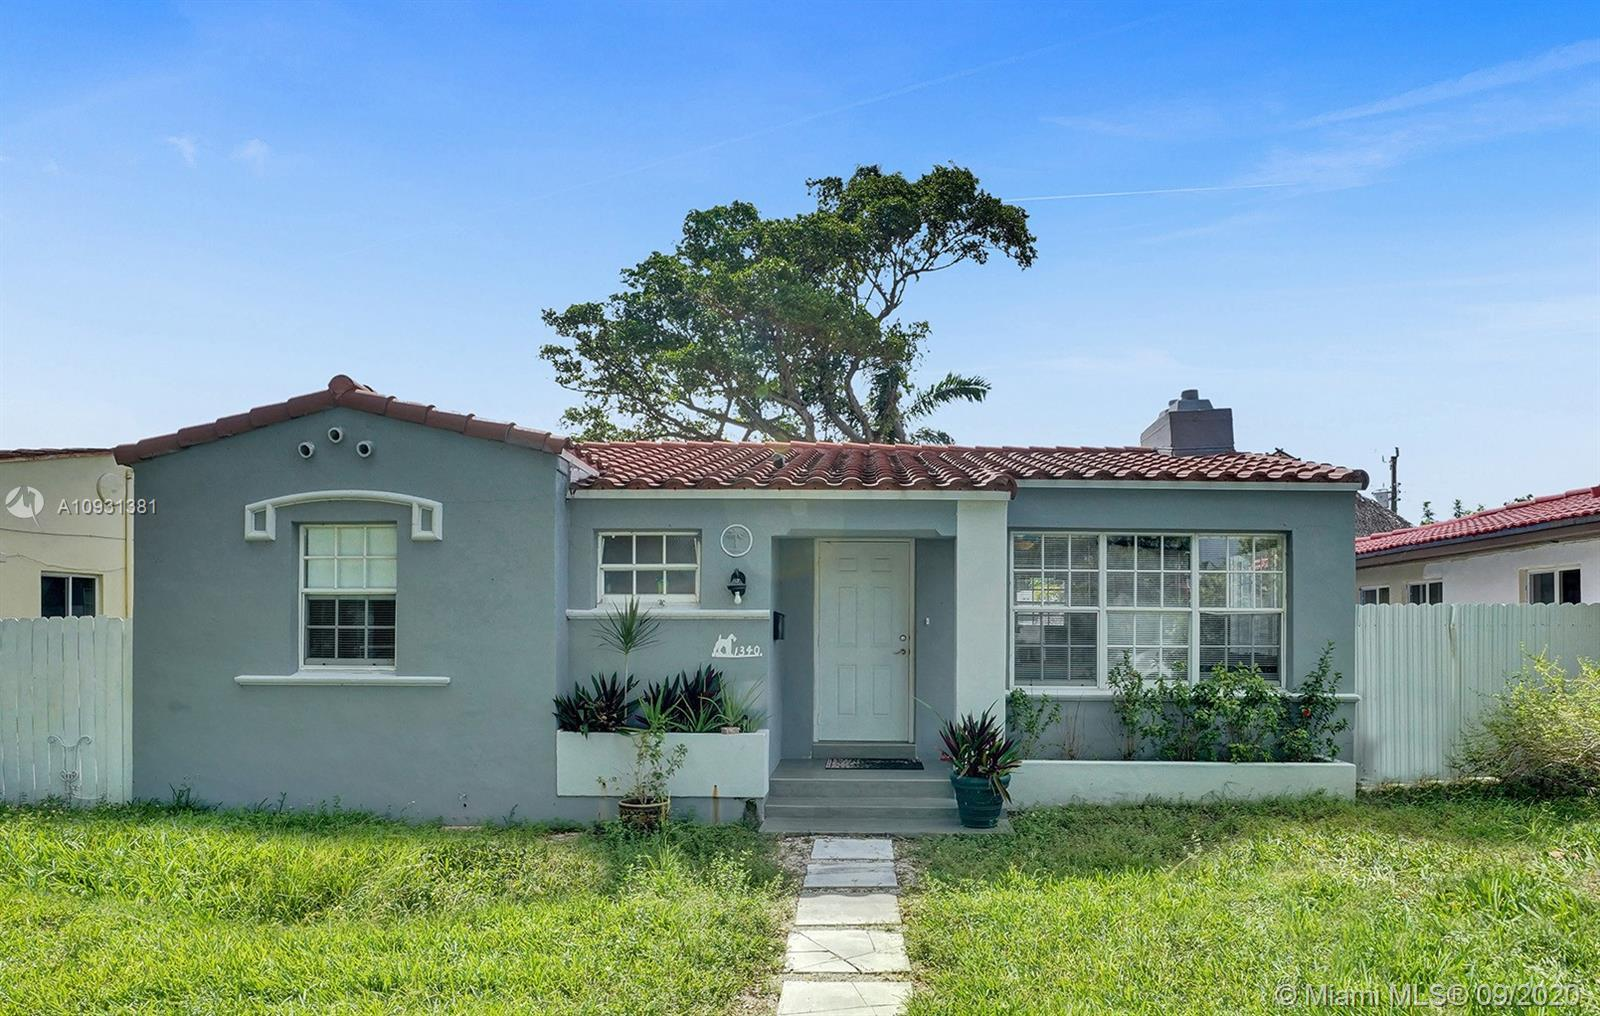 LOCATION is how best describes this property. Modern home located in the desirable Normandy Isles fl